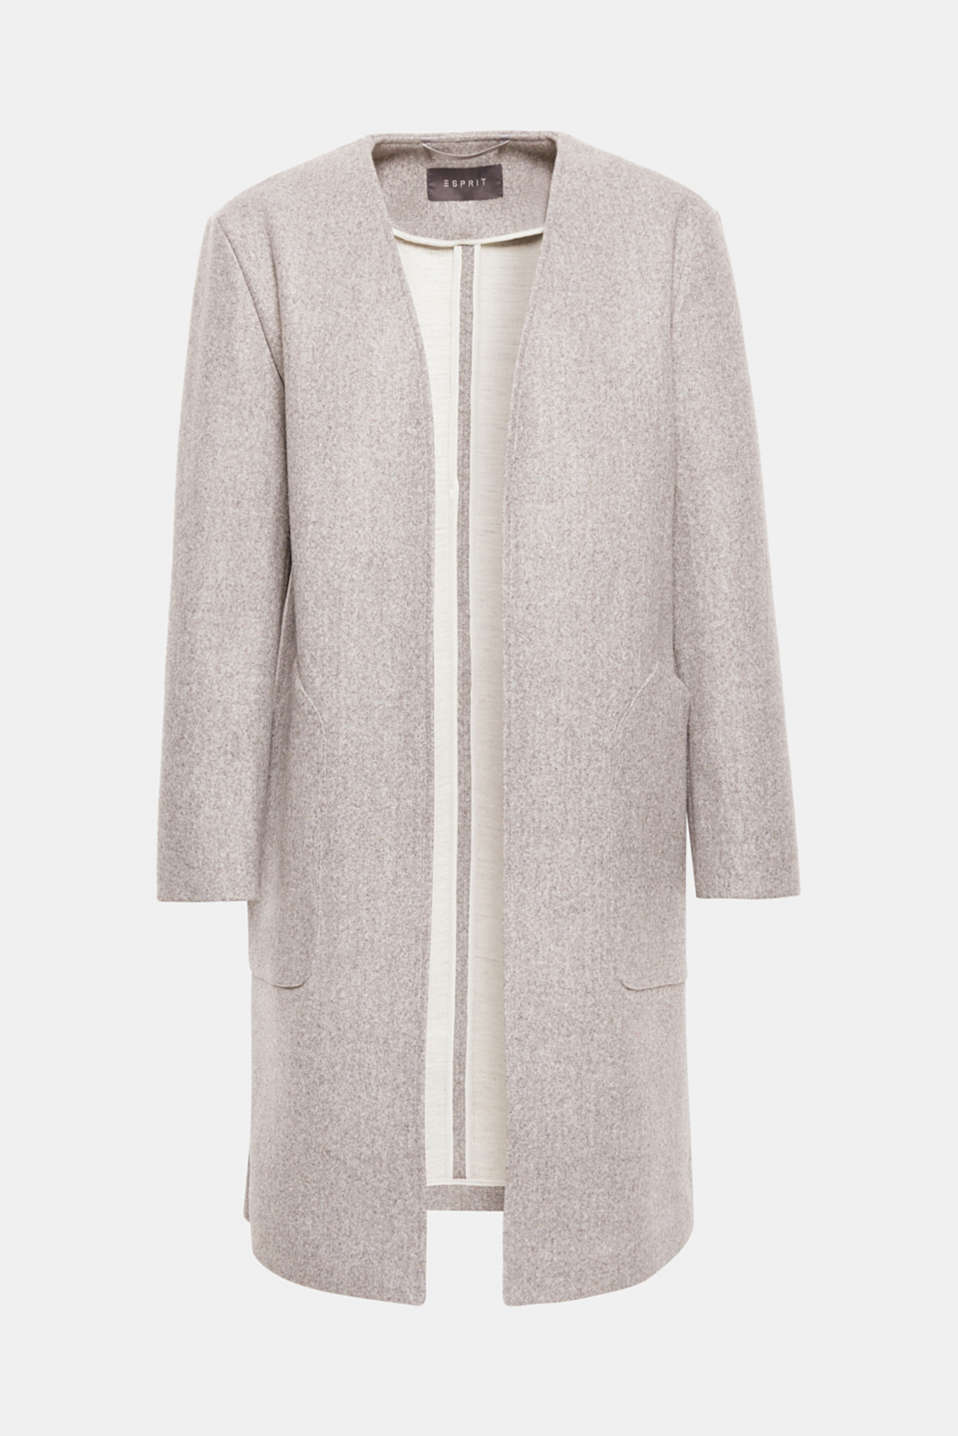 Fashion fave: this open, double-faced coat with large patch pockets is thrown on in a jiffy and looks instantly stylish and sophisticated!